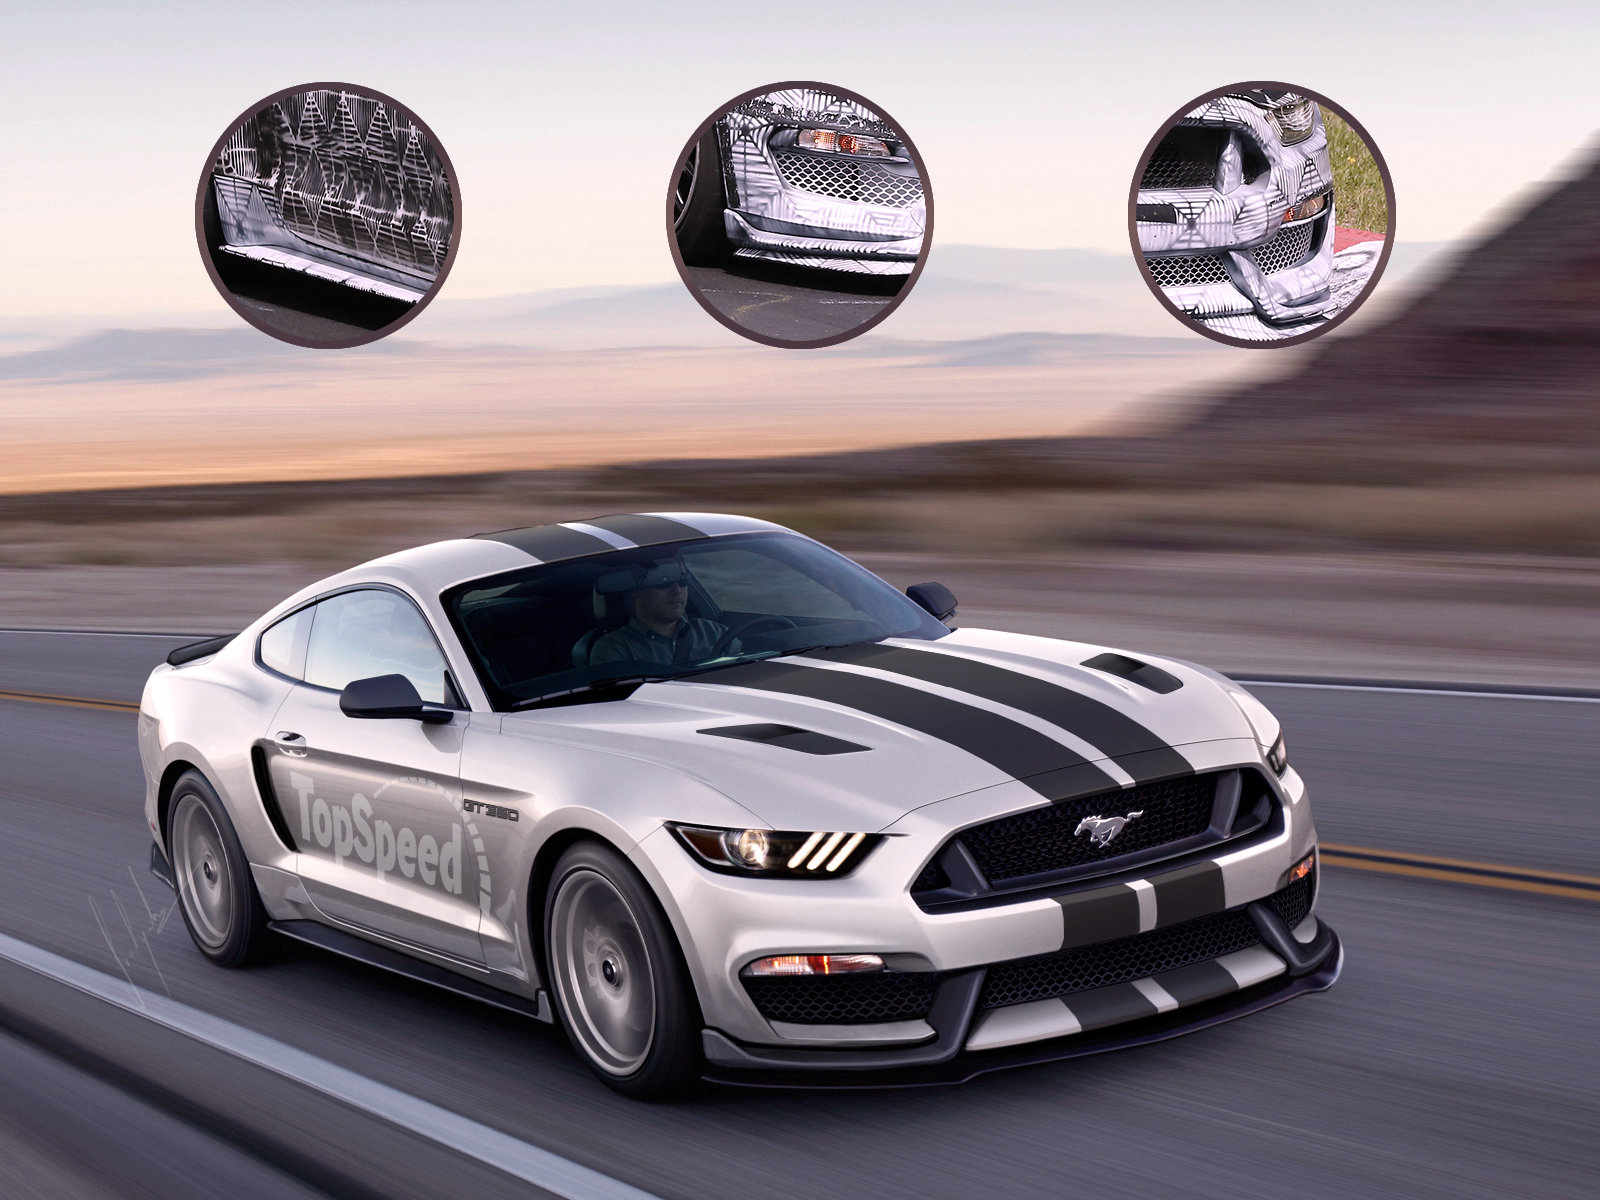 2016 ford mustang gt350 picture 577891 car review. Black Bedroom Furniture Sets. Home Design Ideas